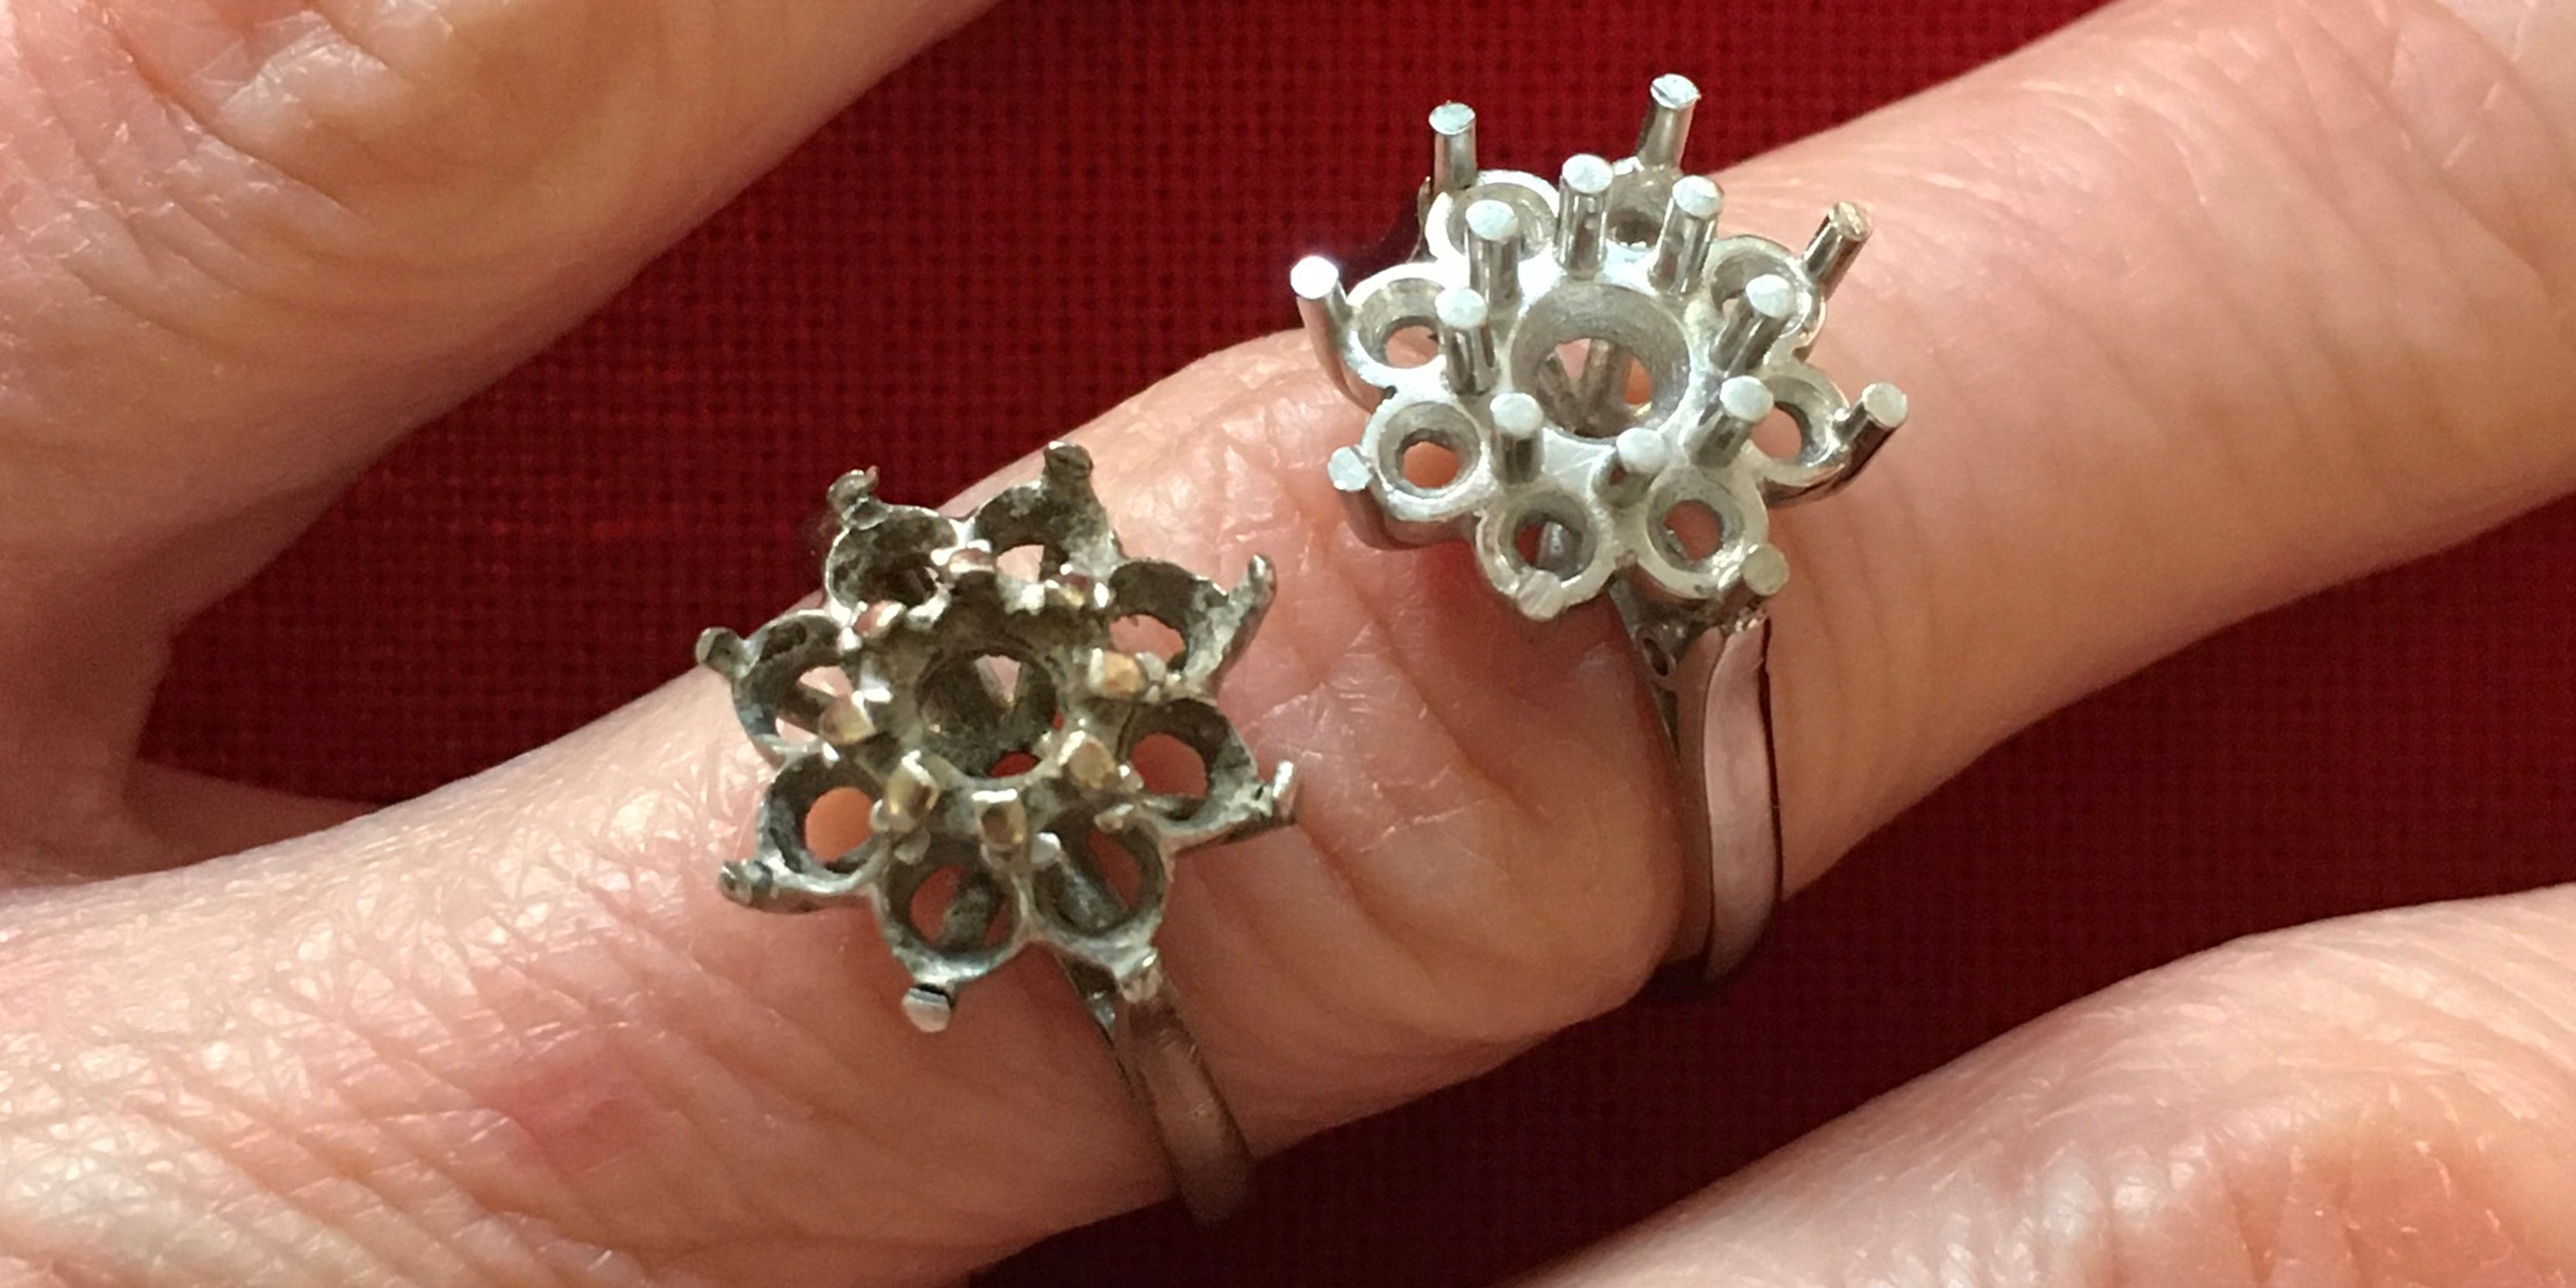 Handmade bespoke remodelled platinum cluster ring made by Amanda Mansell